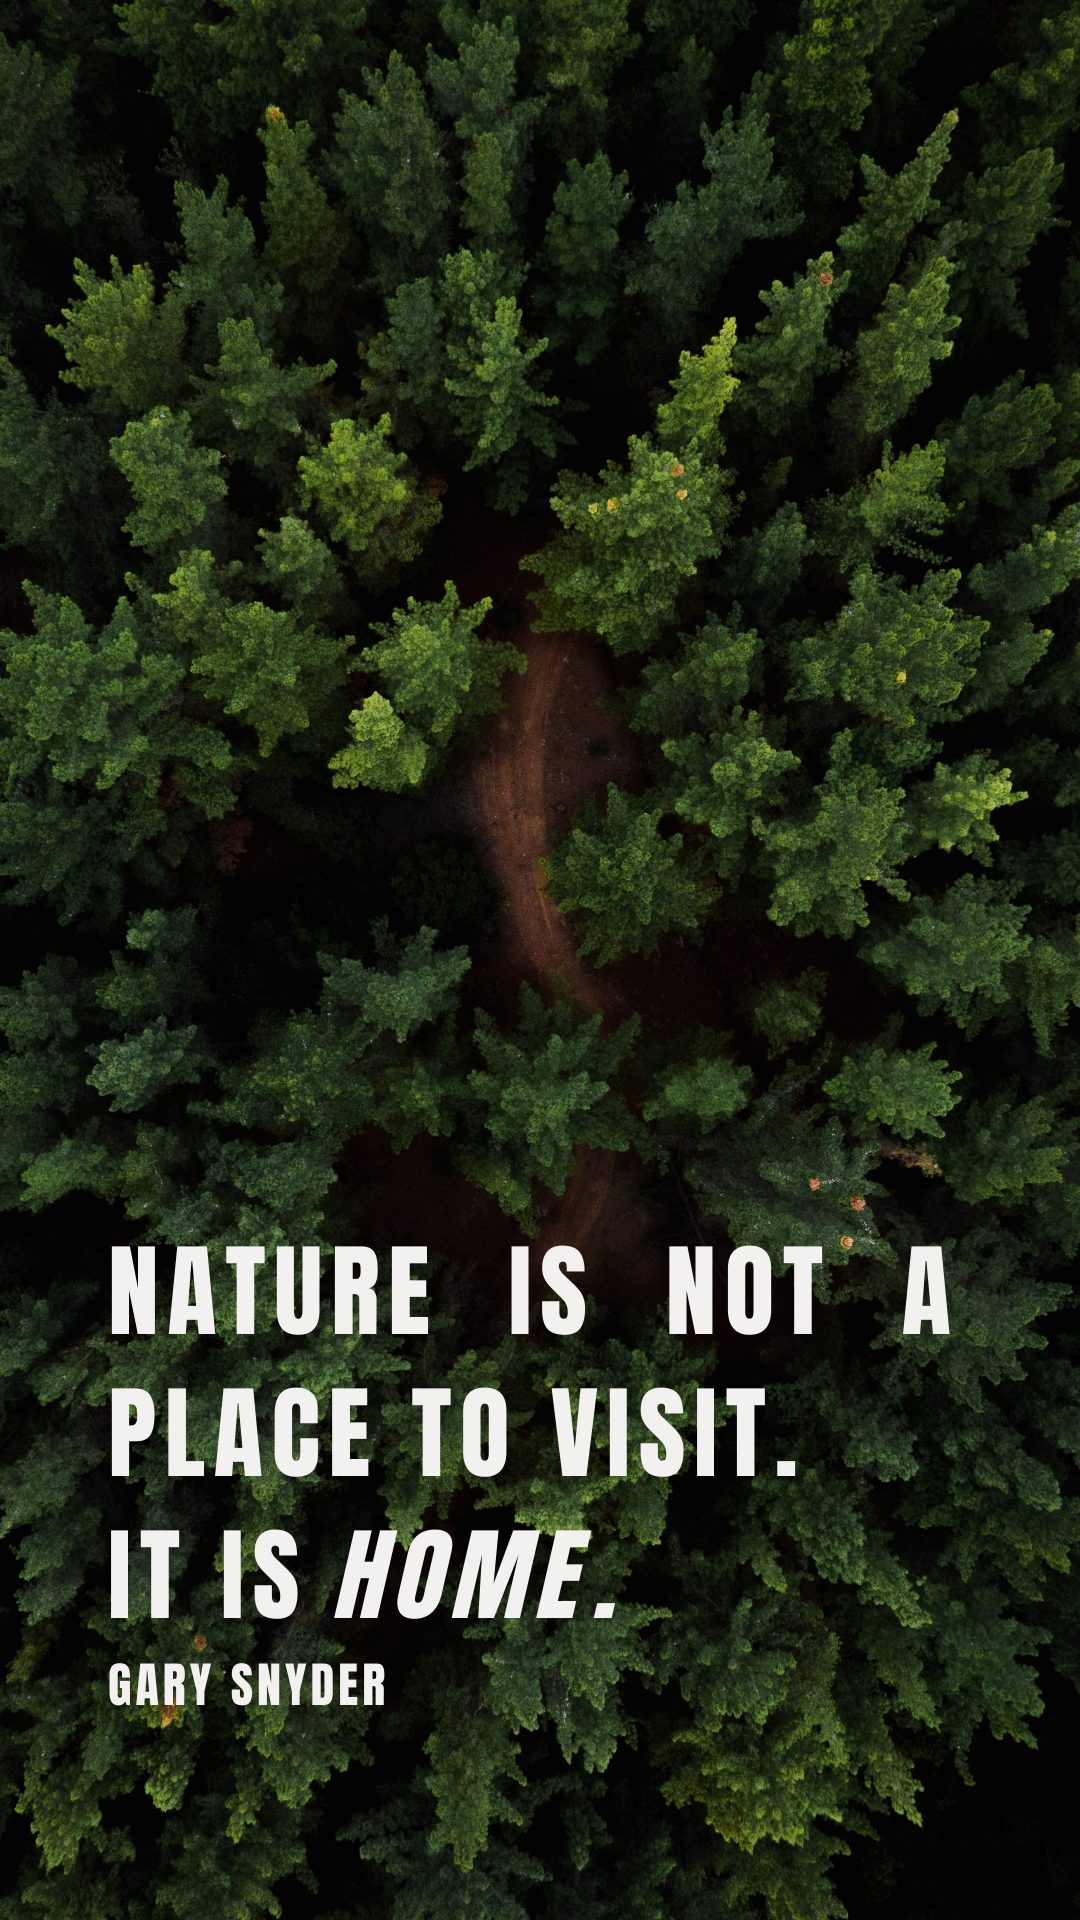 nature is home quote